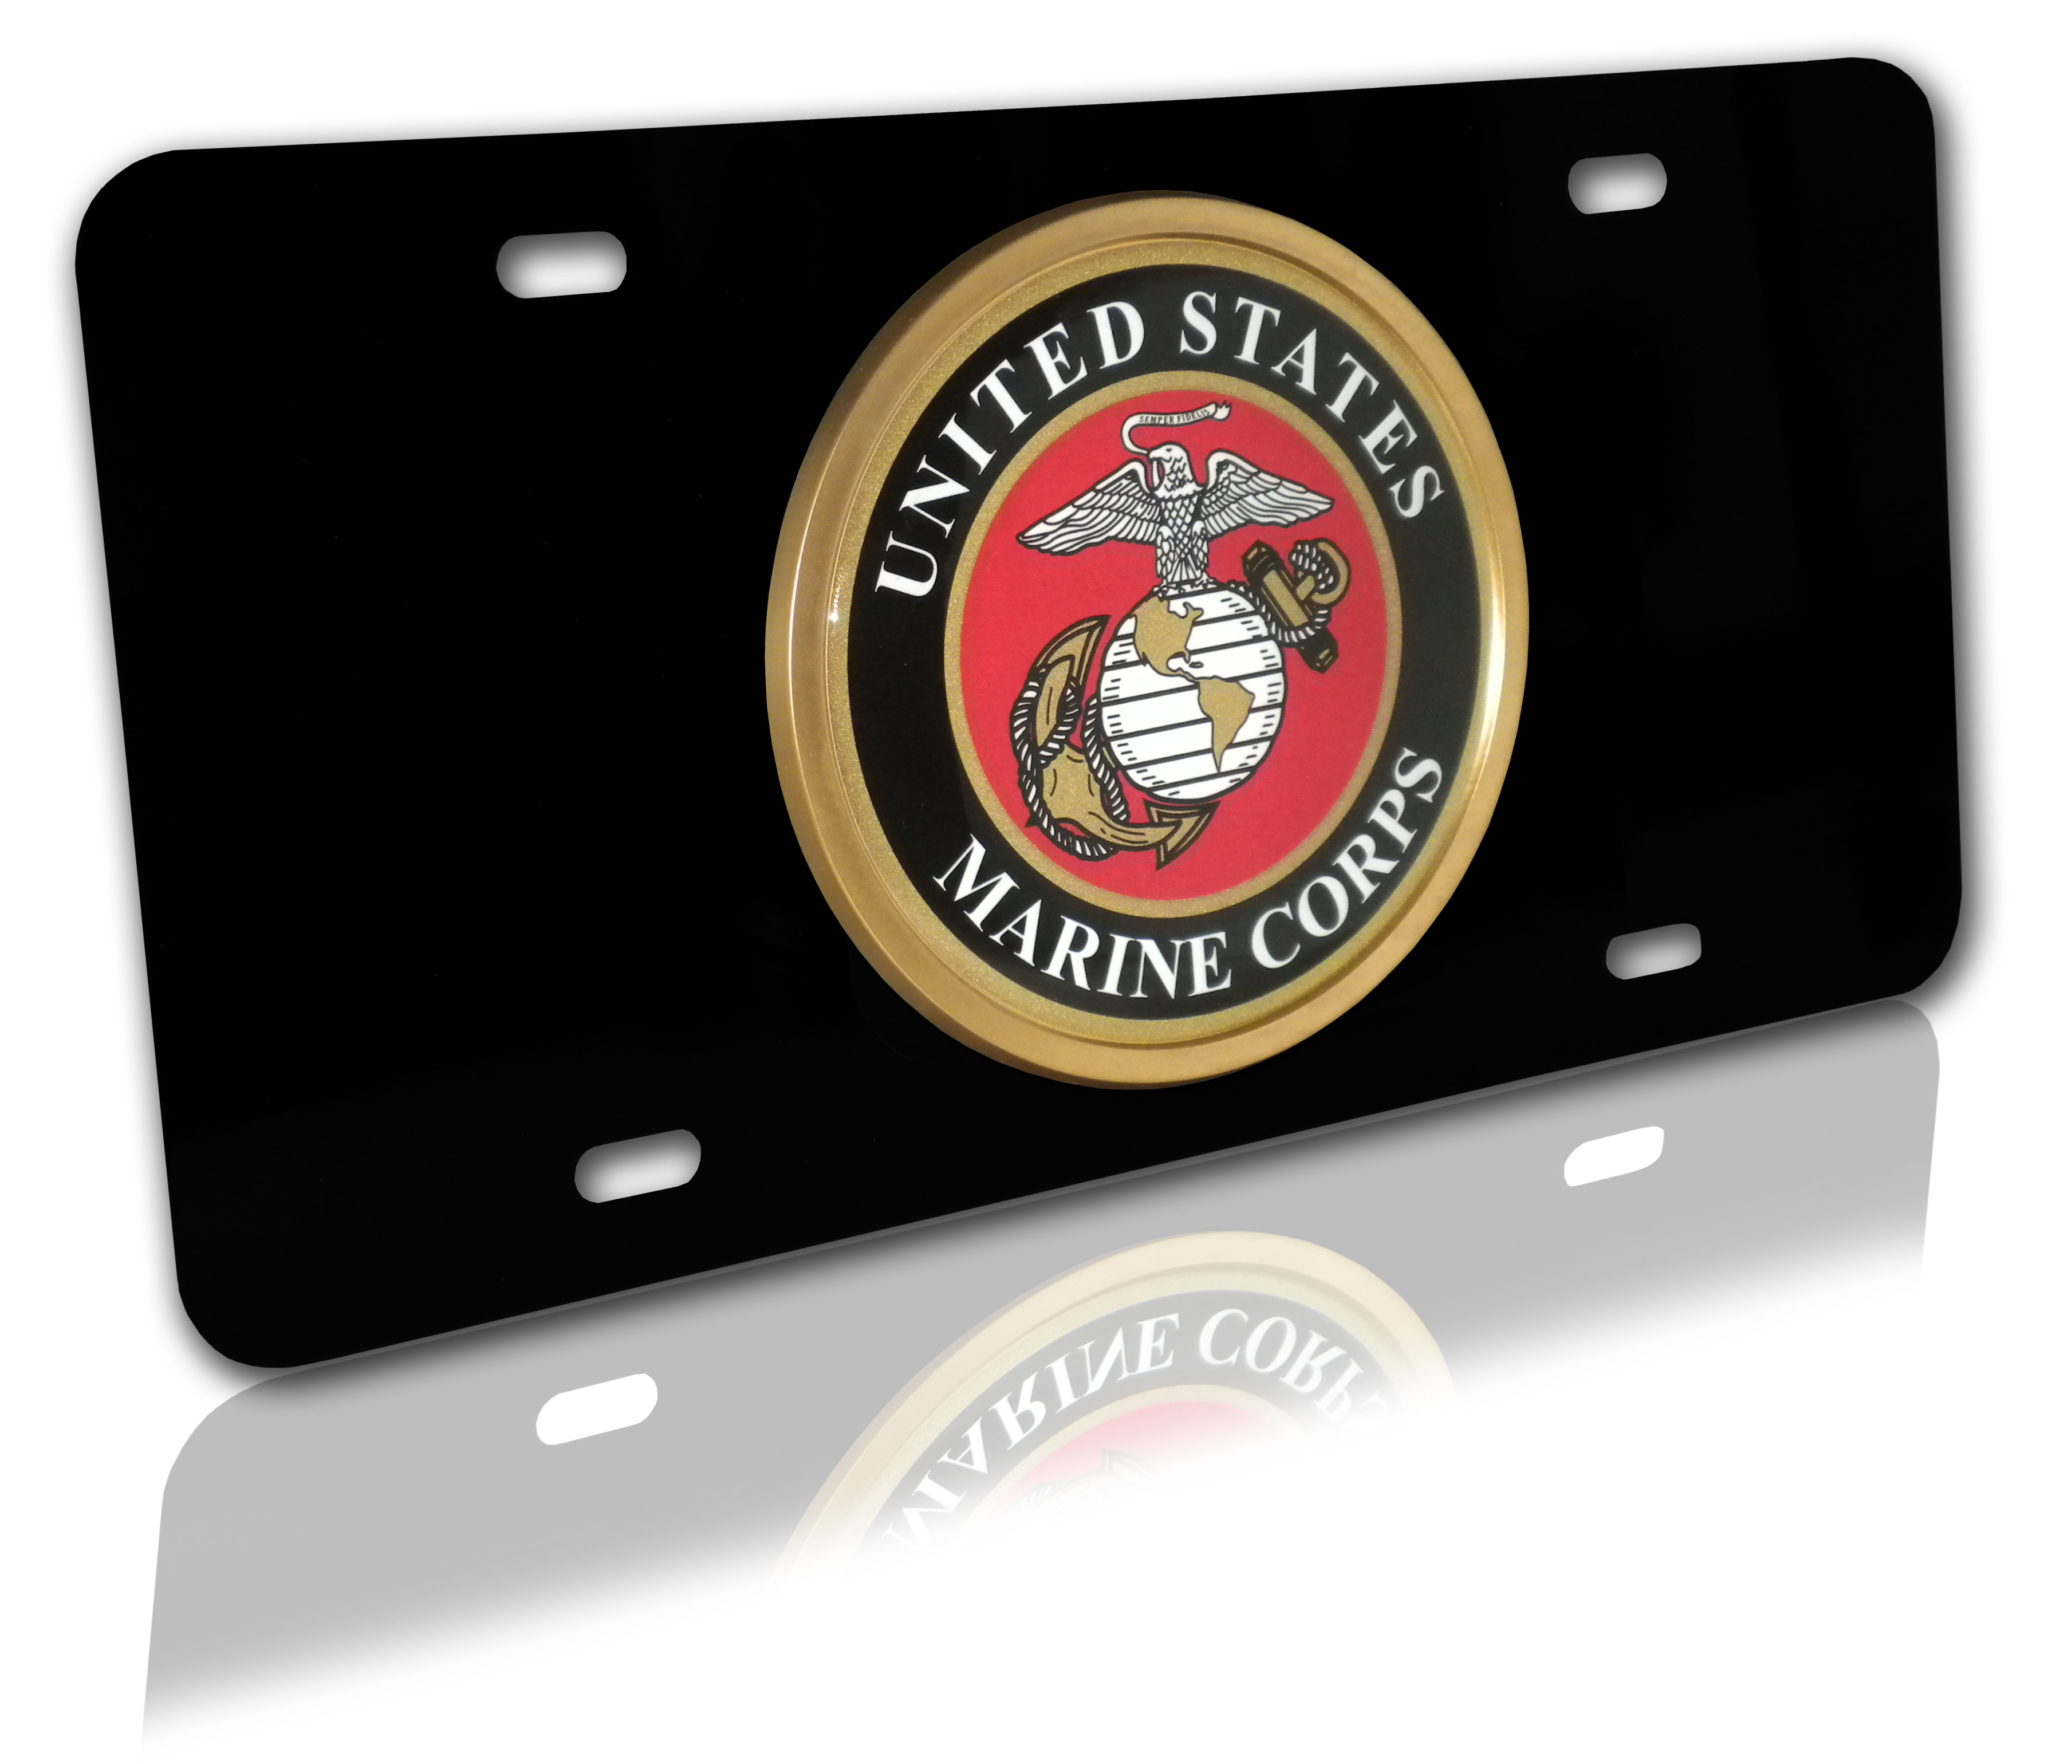 Elektroplateu0027s custom all metal license plates are used in a variety of industries including auto dealerships OEM fundraising retail and corporate ...  sc 1 st  Elektroplate & Decorative License Plates | Elektroplate